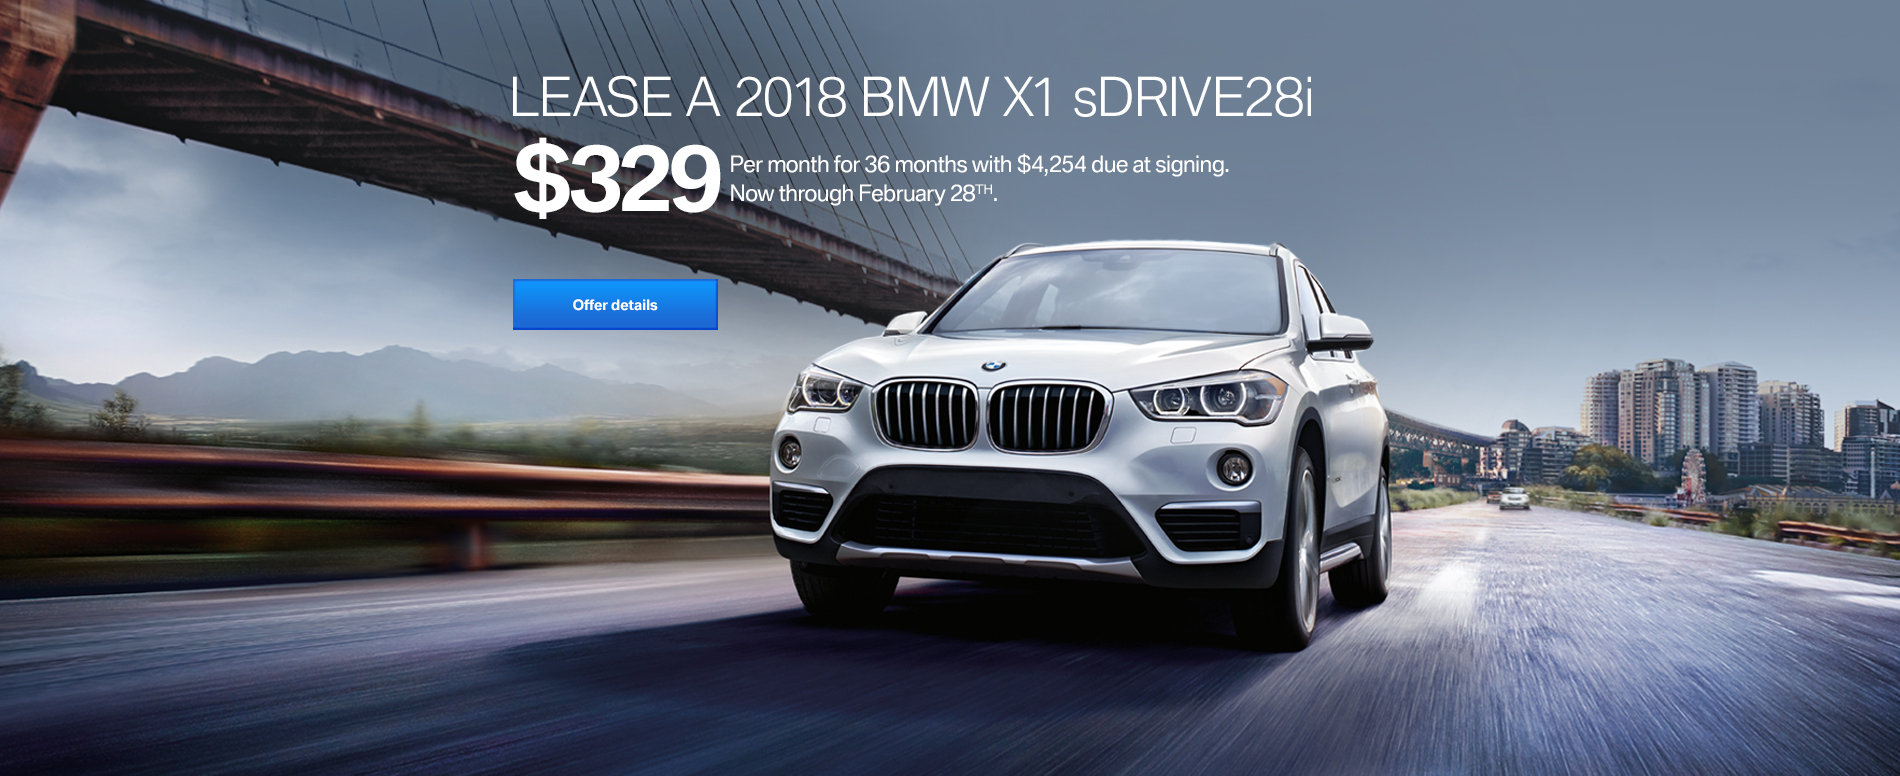 LEASE A 2018 BMW X1 sDRIVE28i FOR $329/MONTH FOR 36 MONTHS WITH